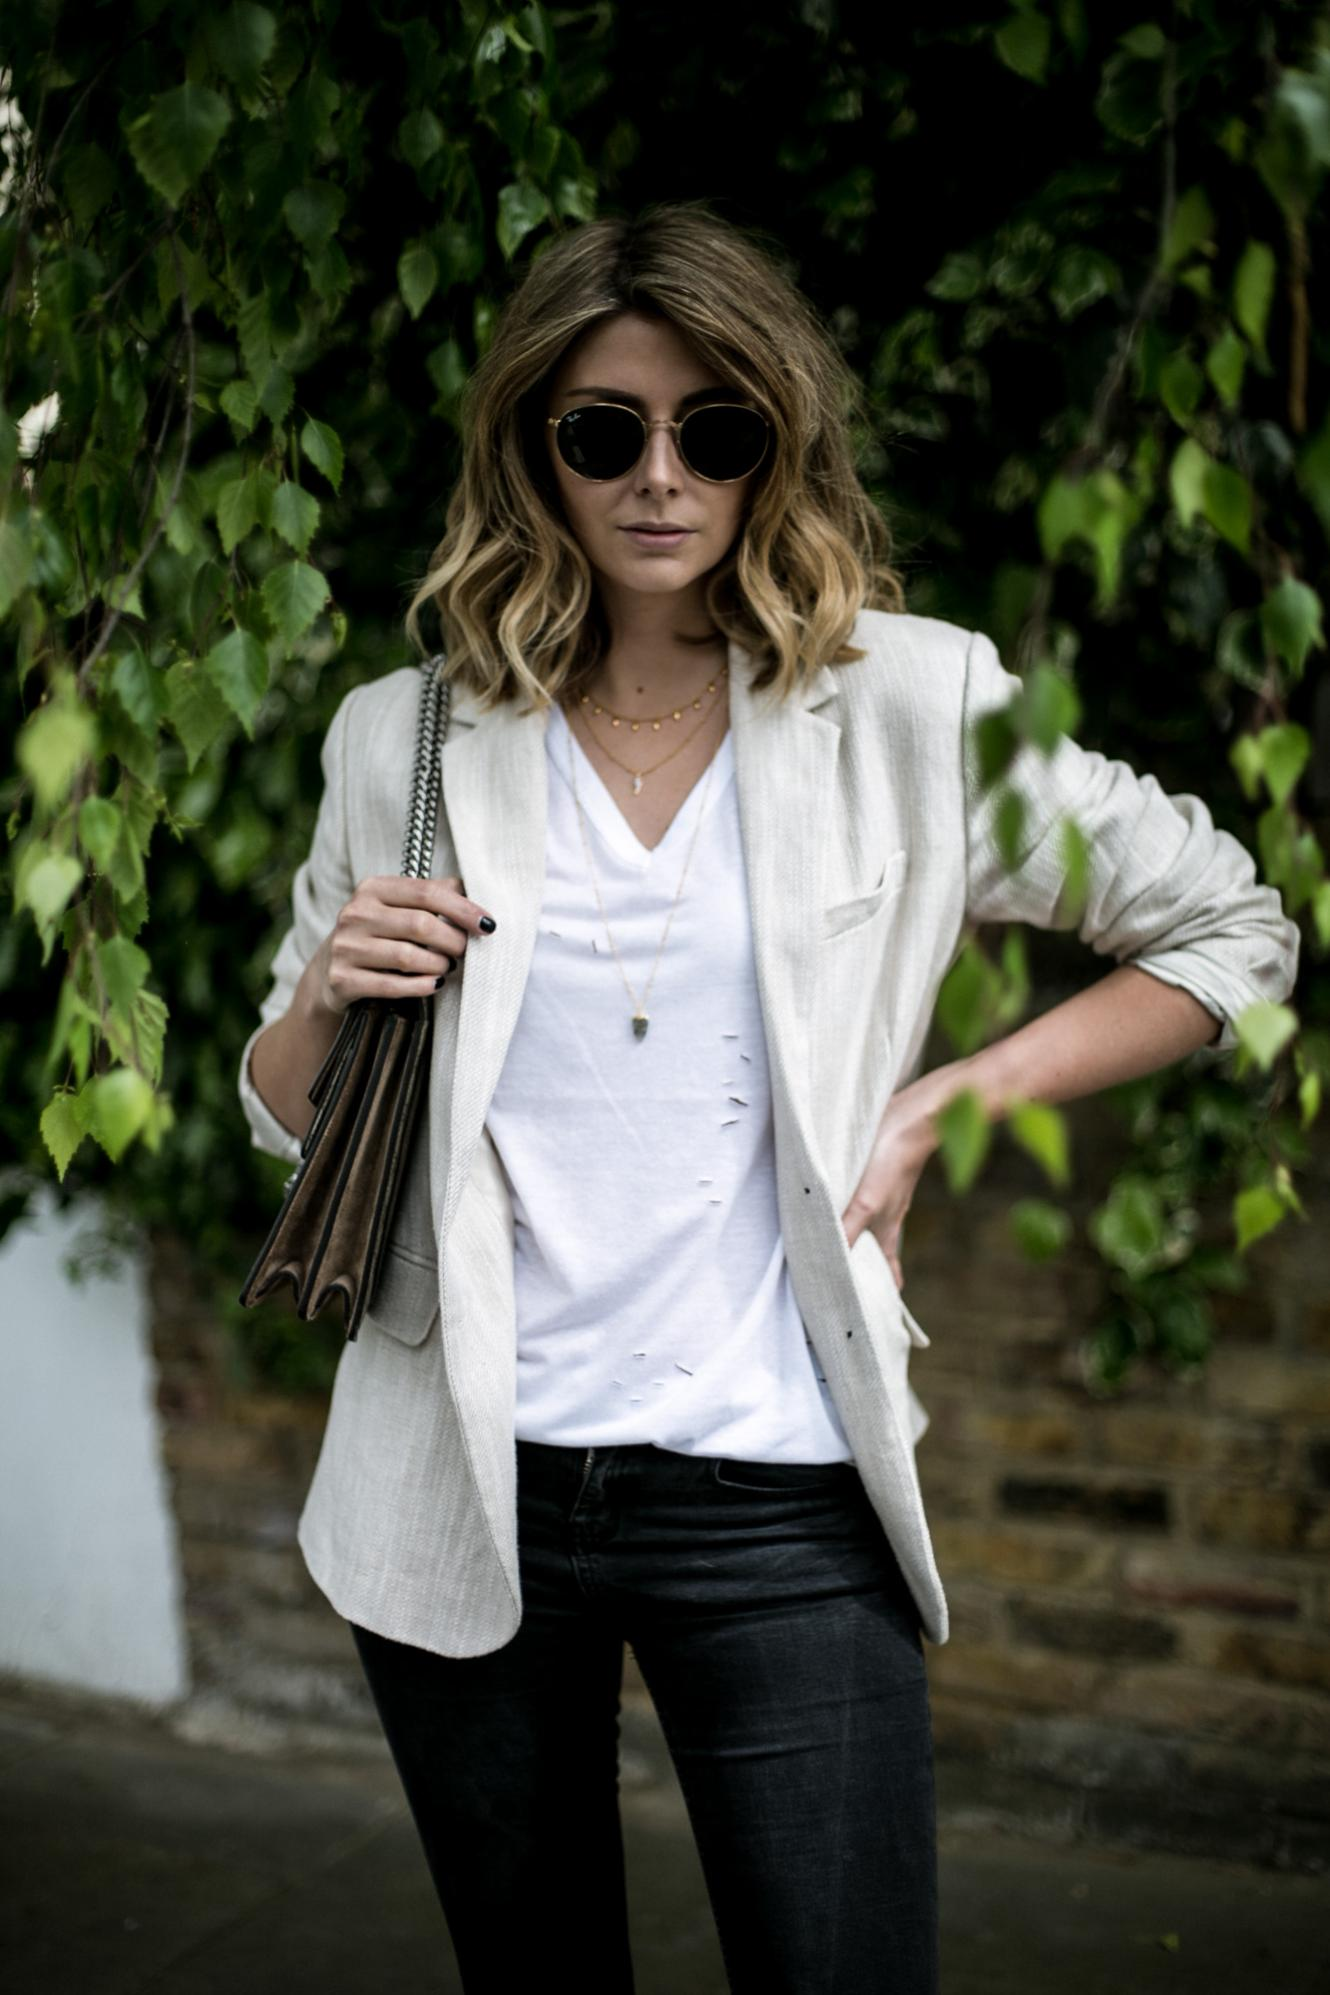 Emma Hill from EJSTYLE wears gold layered necklaces, white nibbled t-shirt, beige linen blazer, gold round Ray-Ban sunglasses